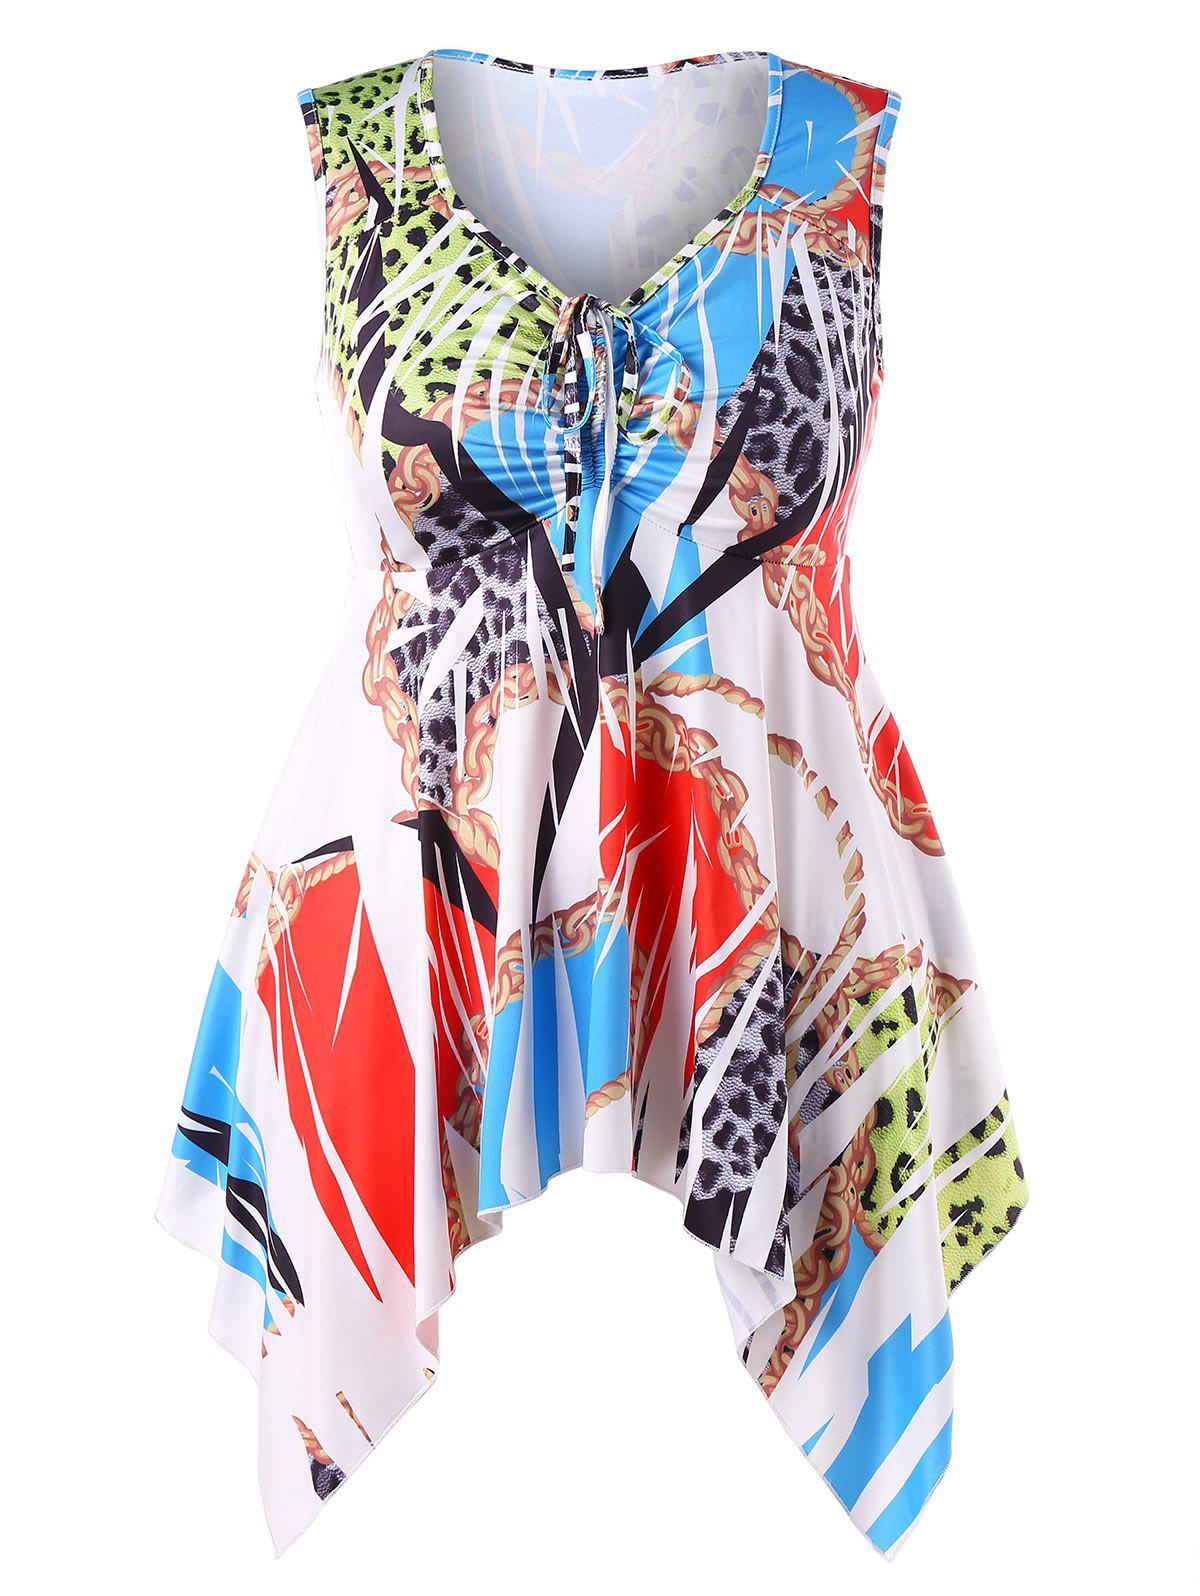 015abece1972c 55% OFF   2018 Plus Size Printed Asymmetrical Empire Waist Top In ...